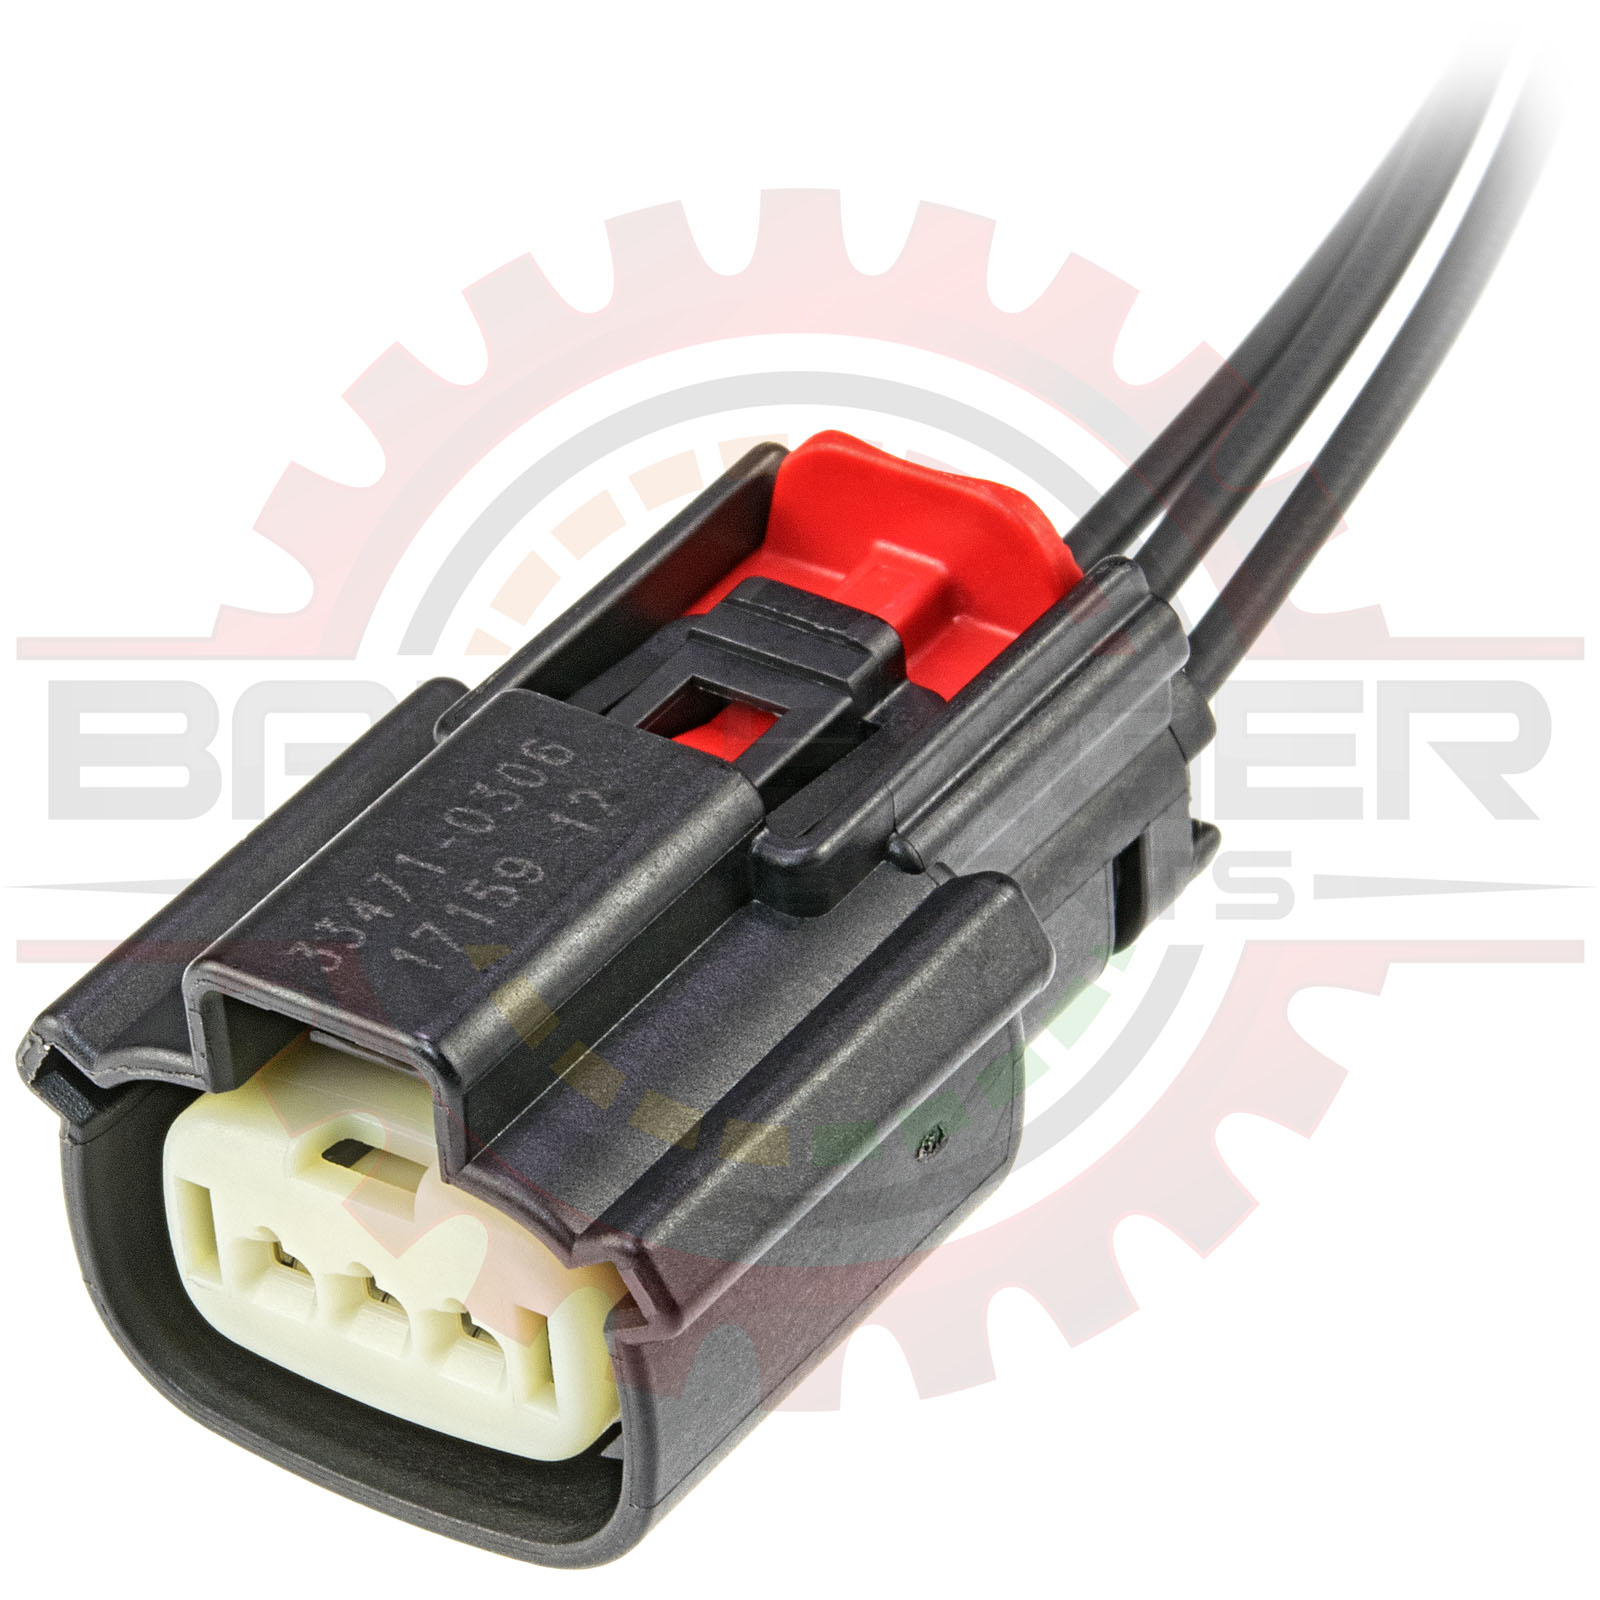 3 Way Ford / Mazda Ignition Coil & Sensor Connector Pigtail